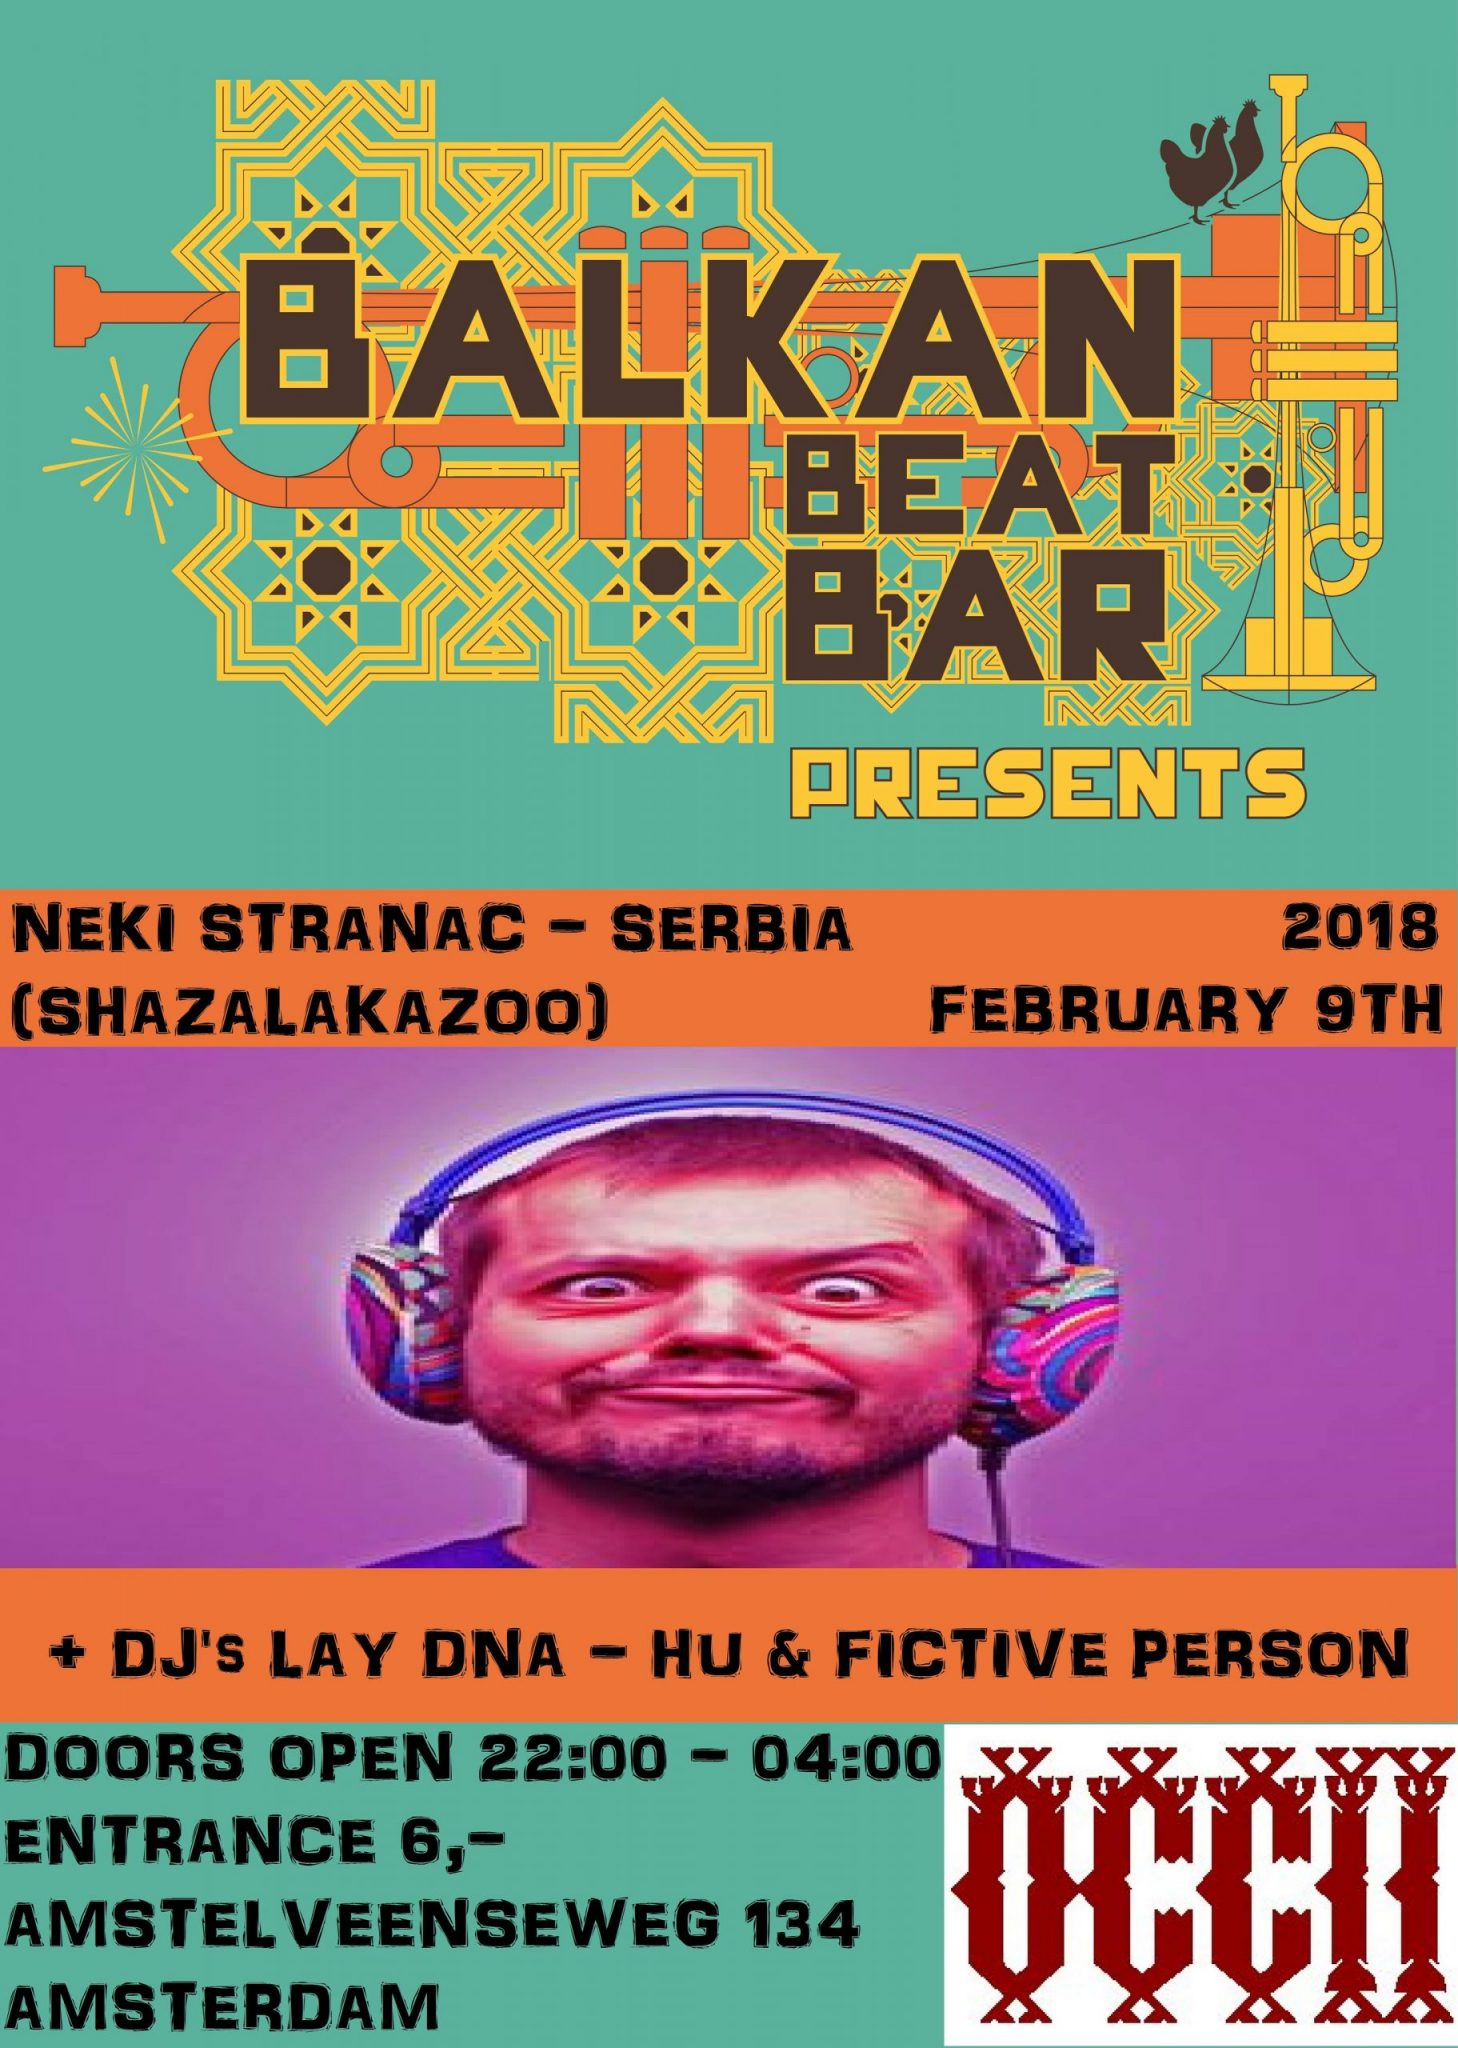 DJ NEKI STRANAC (RS, Shazalakazoo) + LAY DNA (HU) & Fictive Person